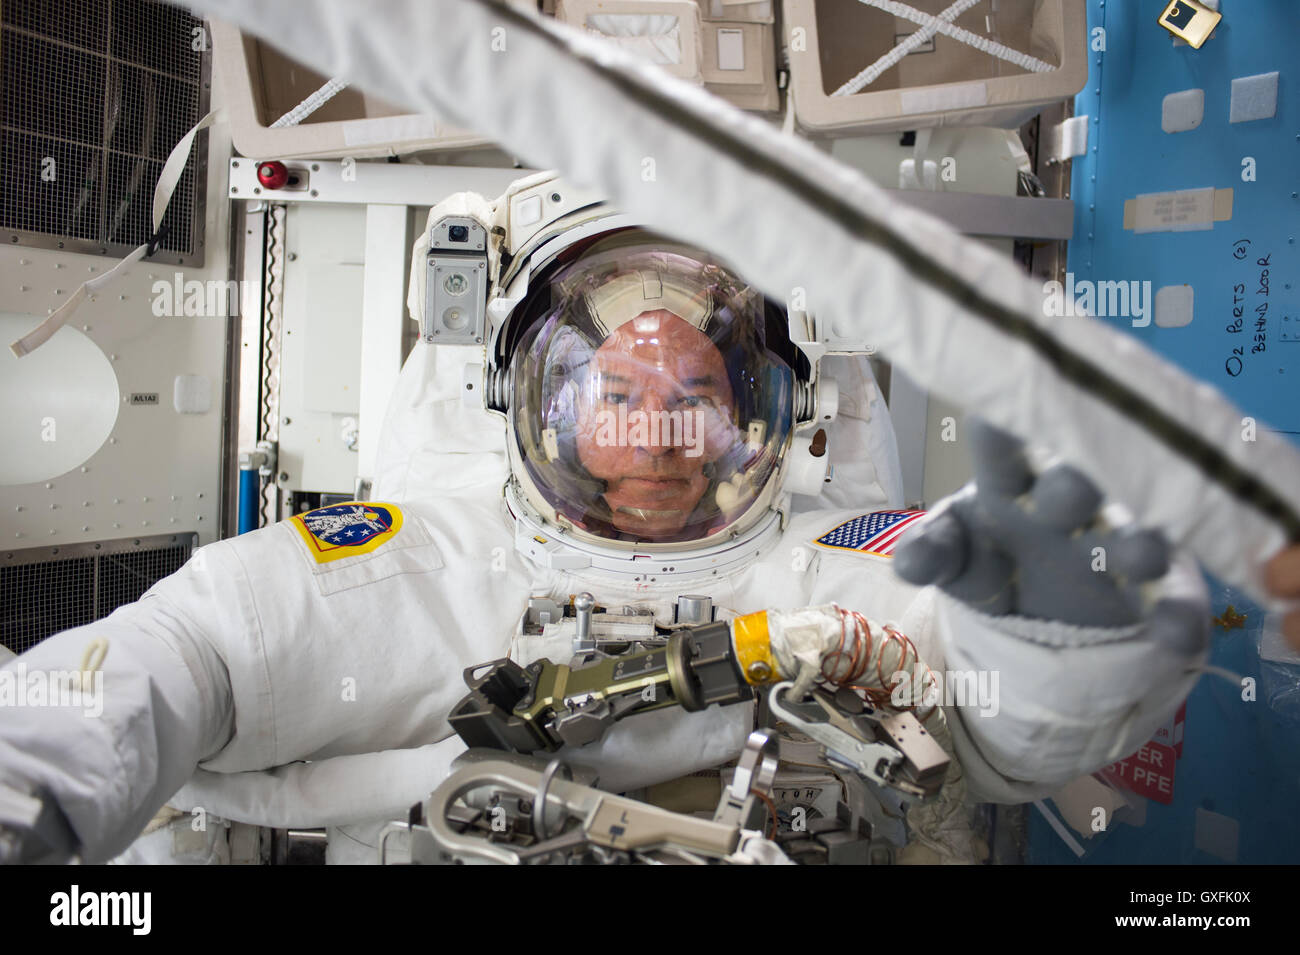 International Space Station Expedition 48 crew member NASA astronaut Commander Jeff Williams following a spacewalk - Stock Image